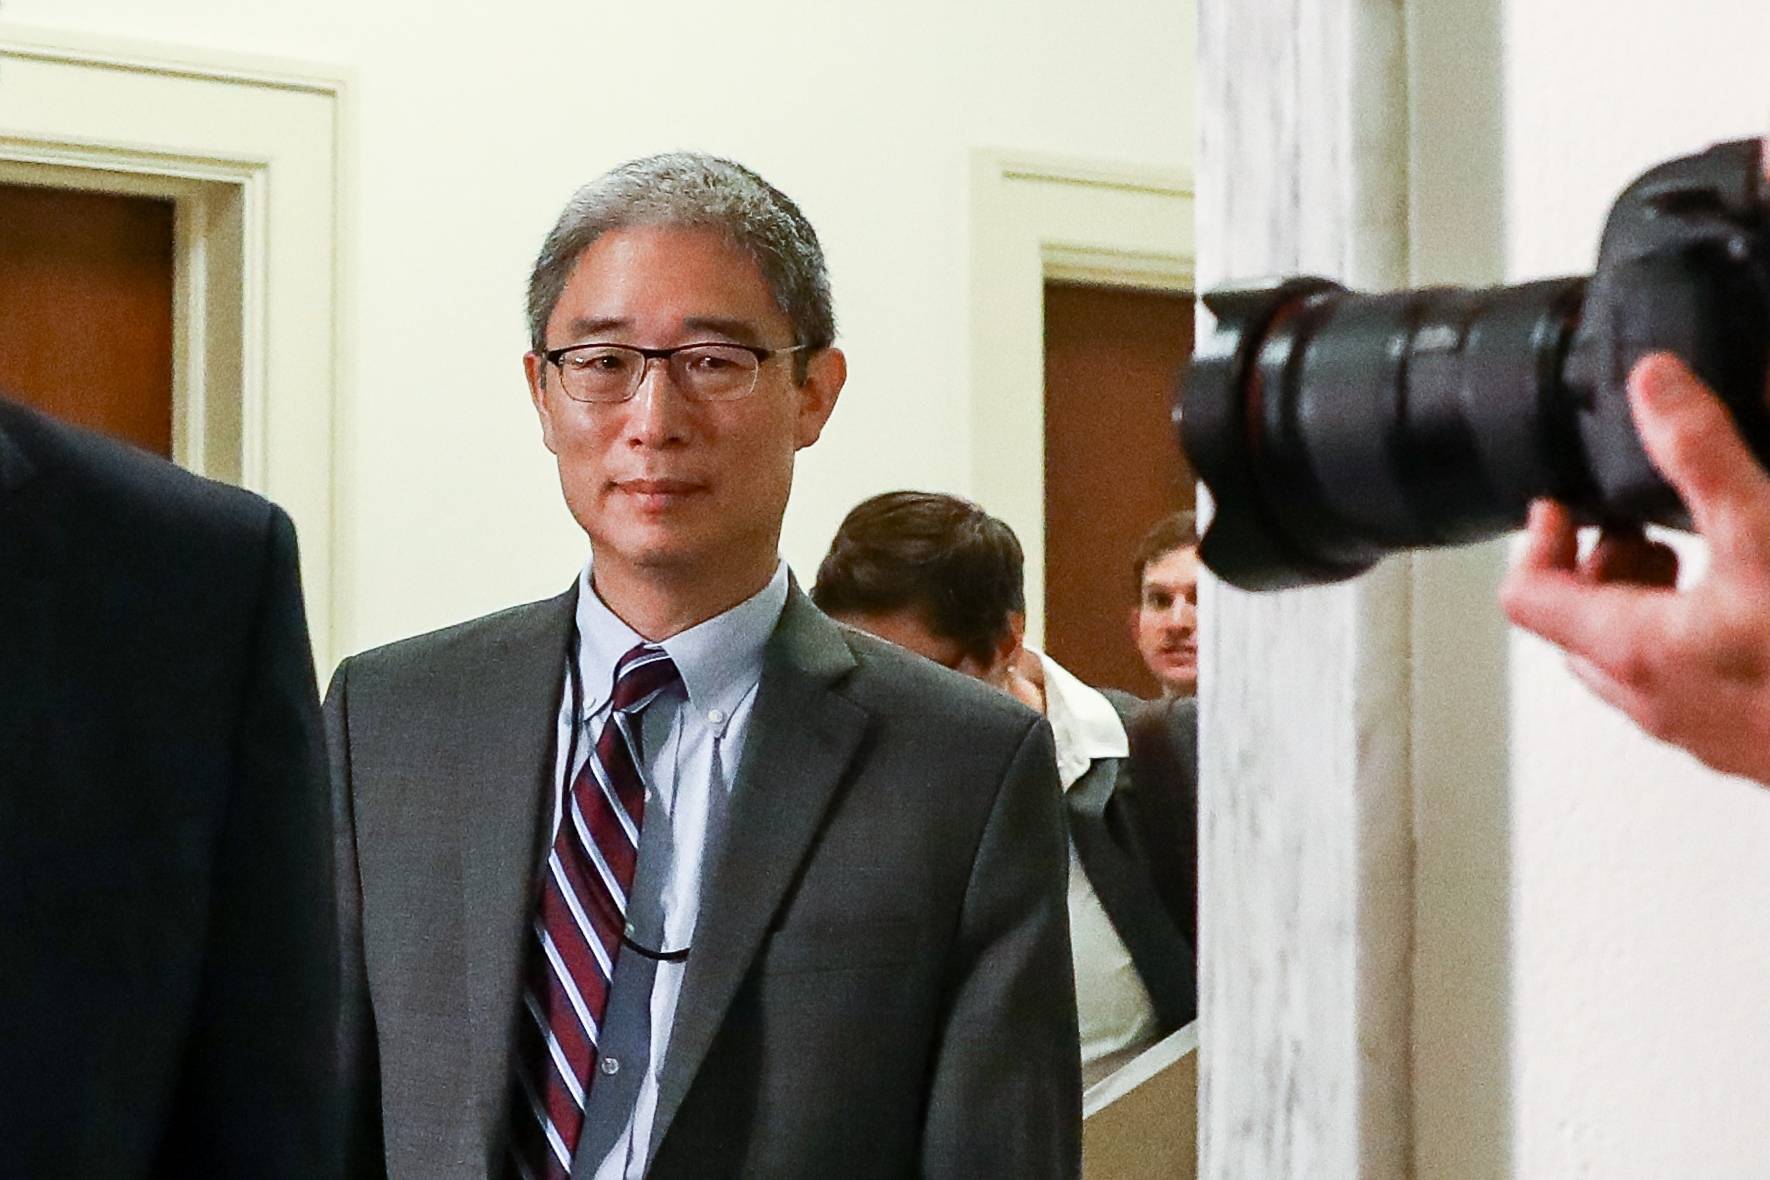 Bruce Ohr FBI Notes Show Anti-Trump Materials Were Shared Among Top Obama Officials